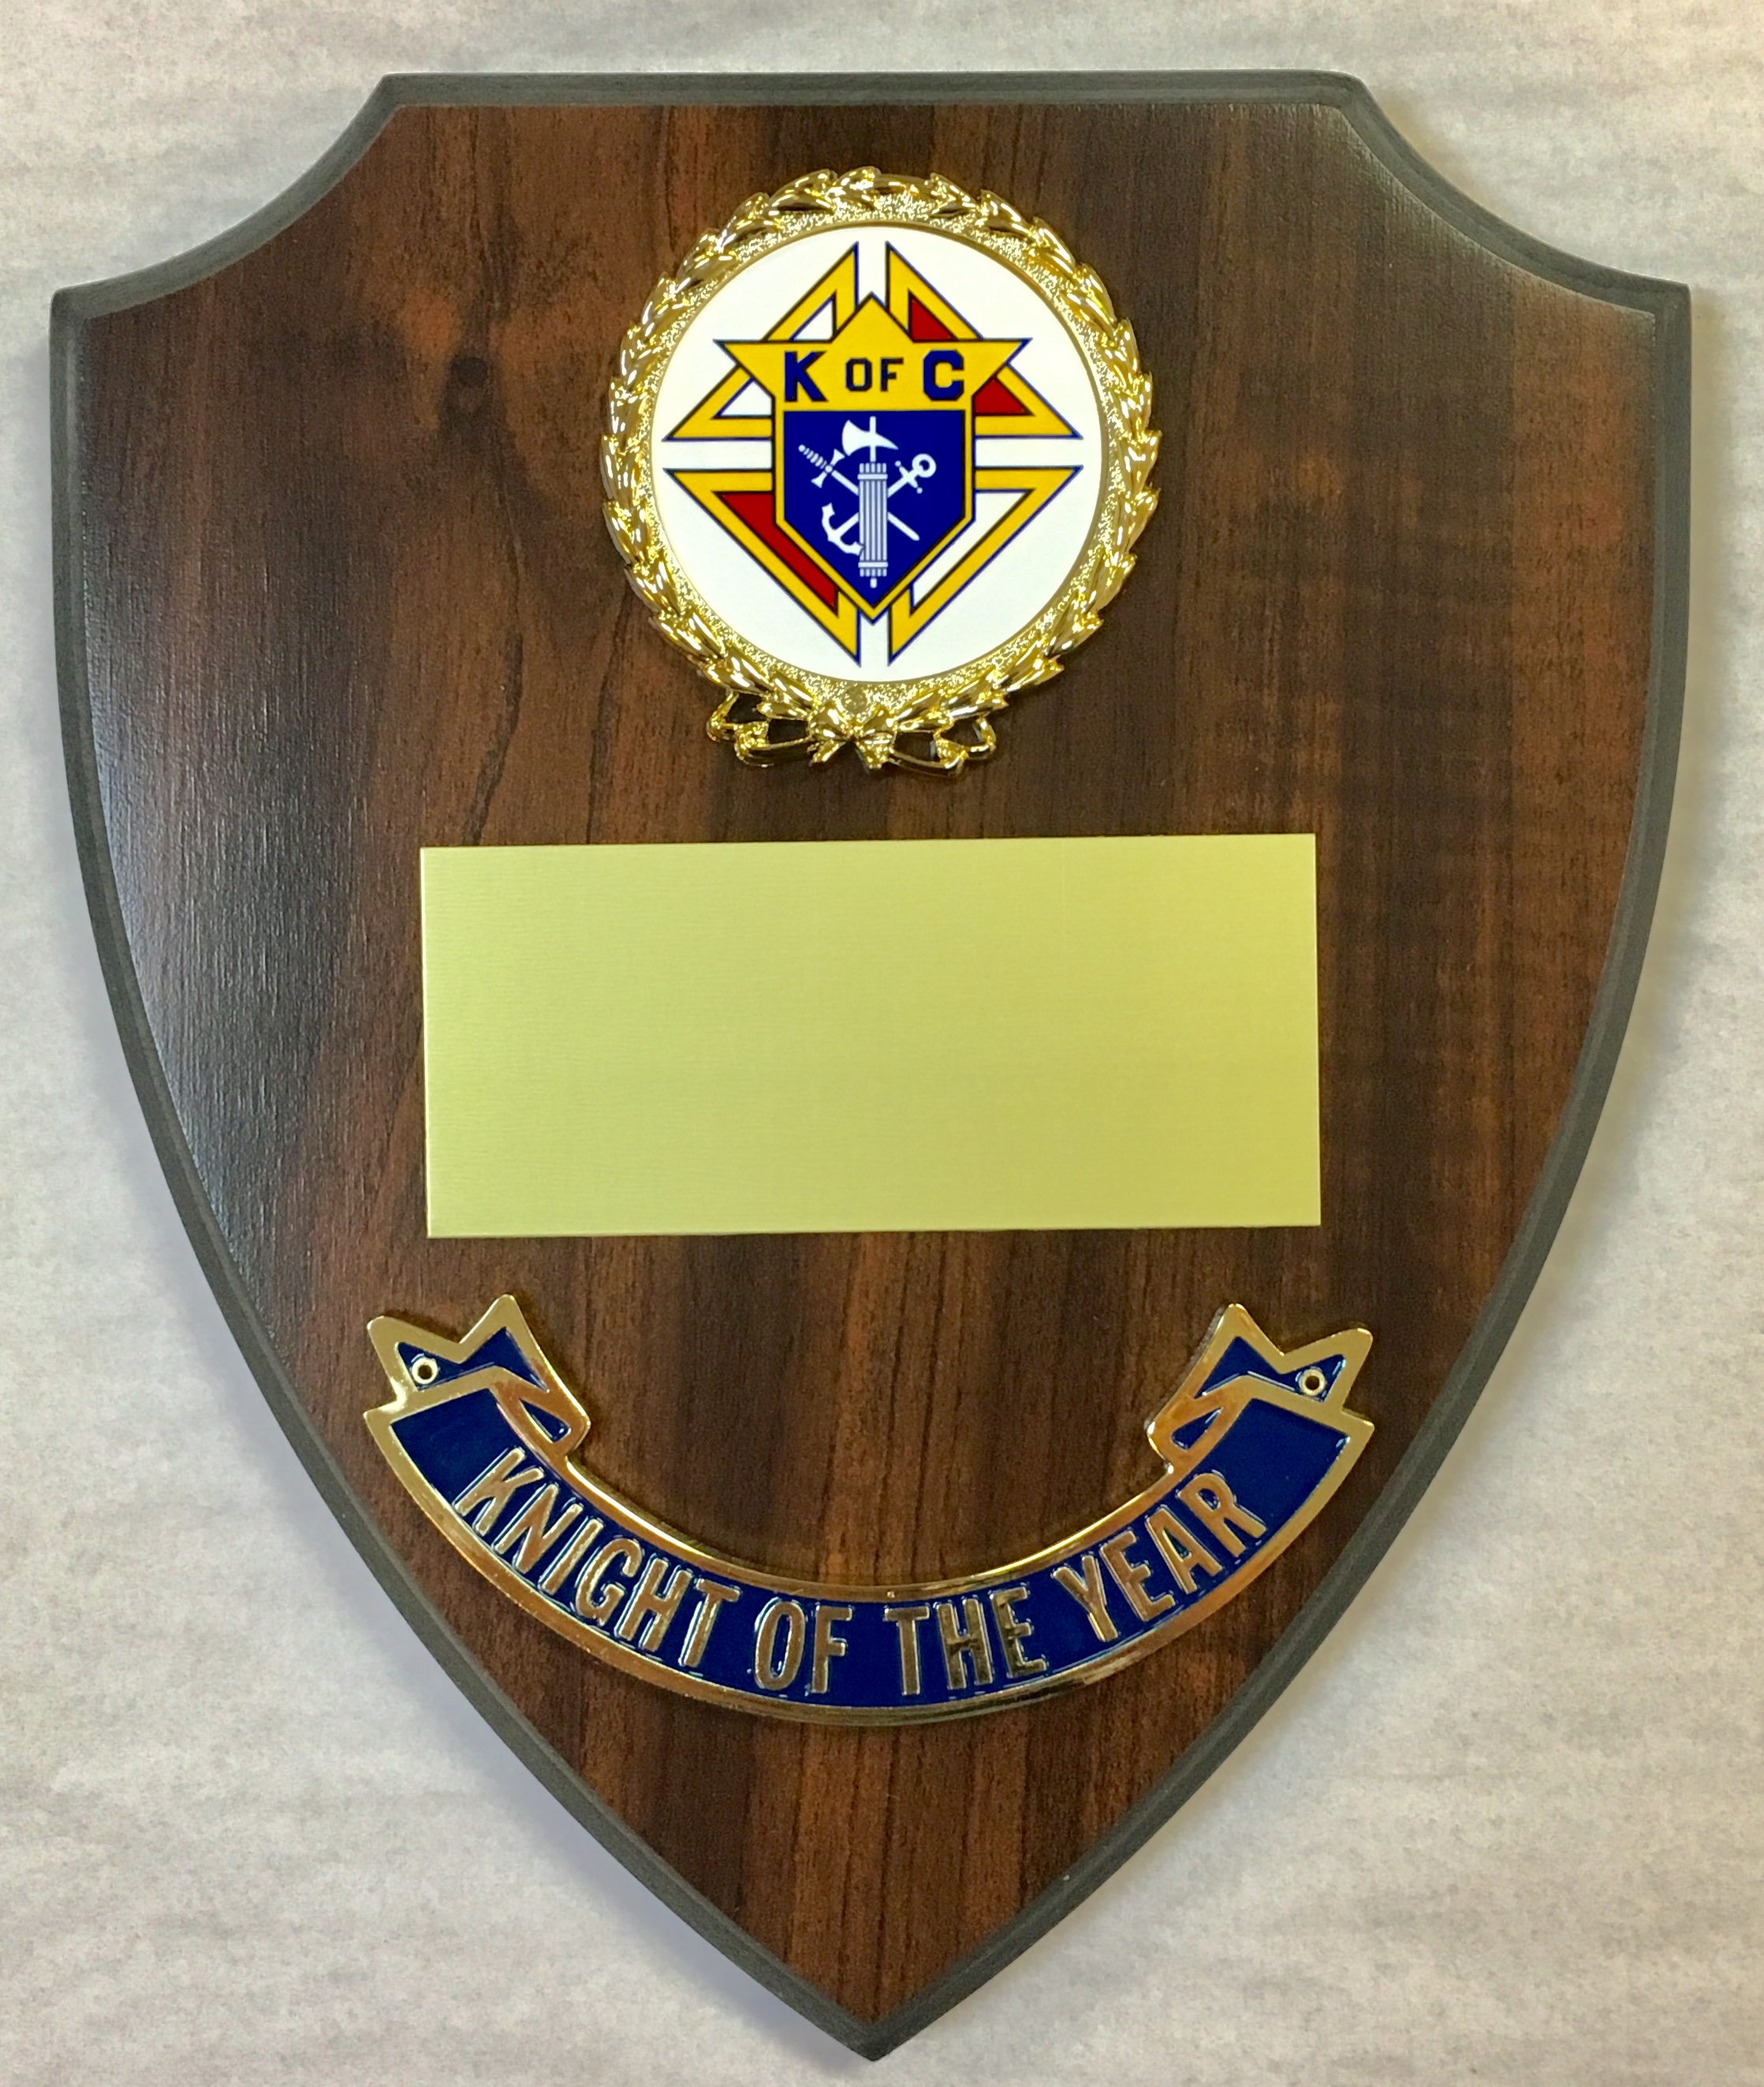 Knight of the Year Shield Plaque